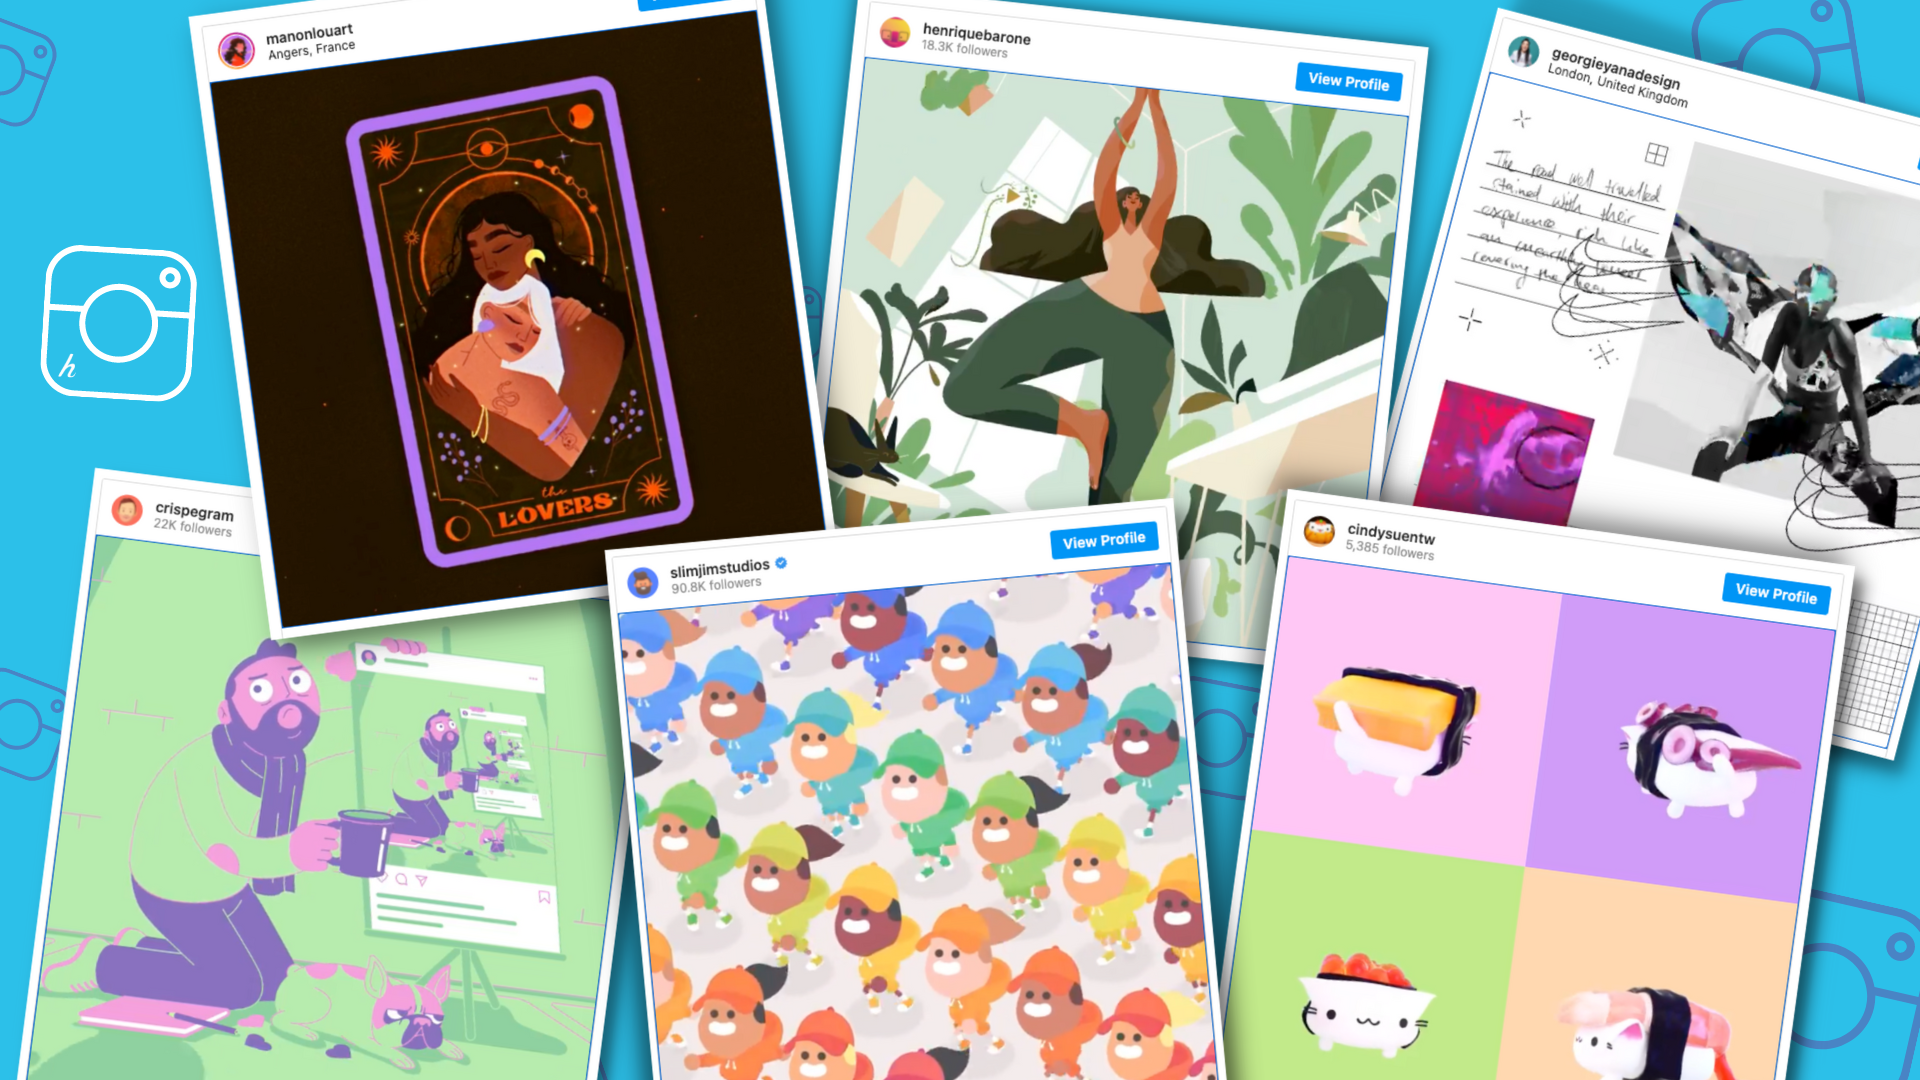 Motion Designers On Instagram To Inspire Your Creativity